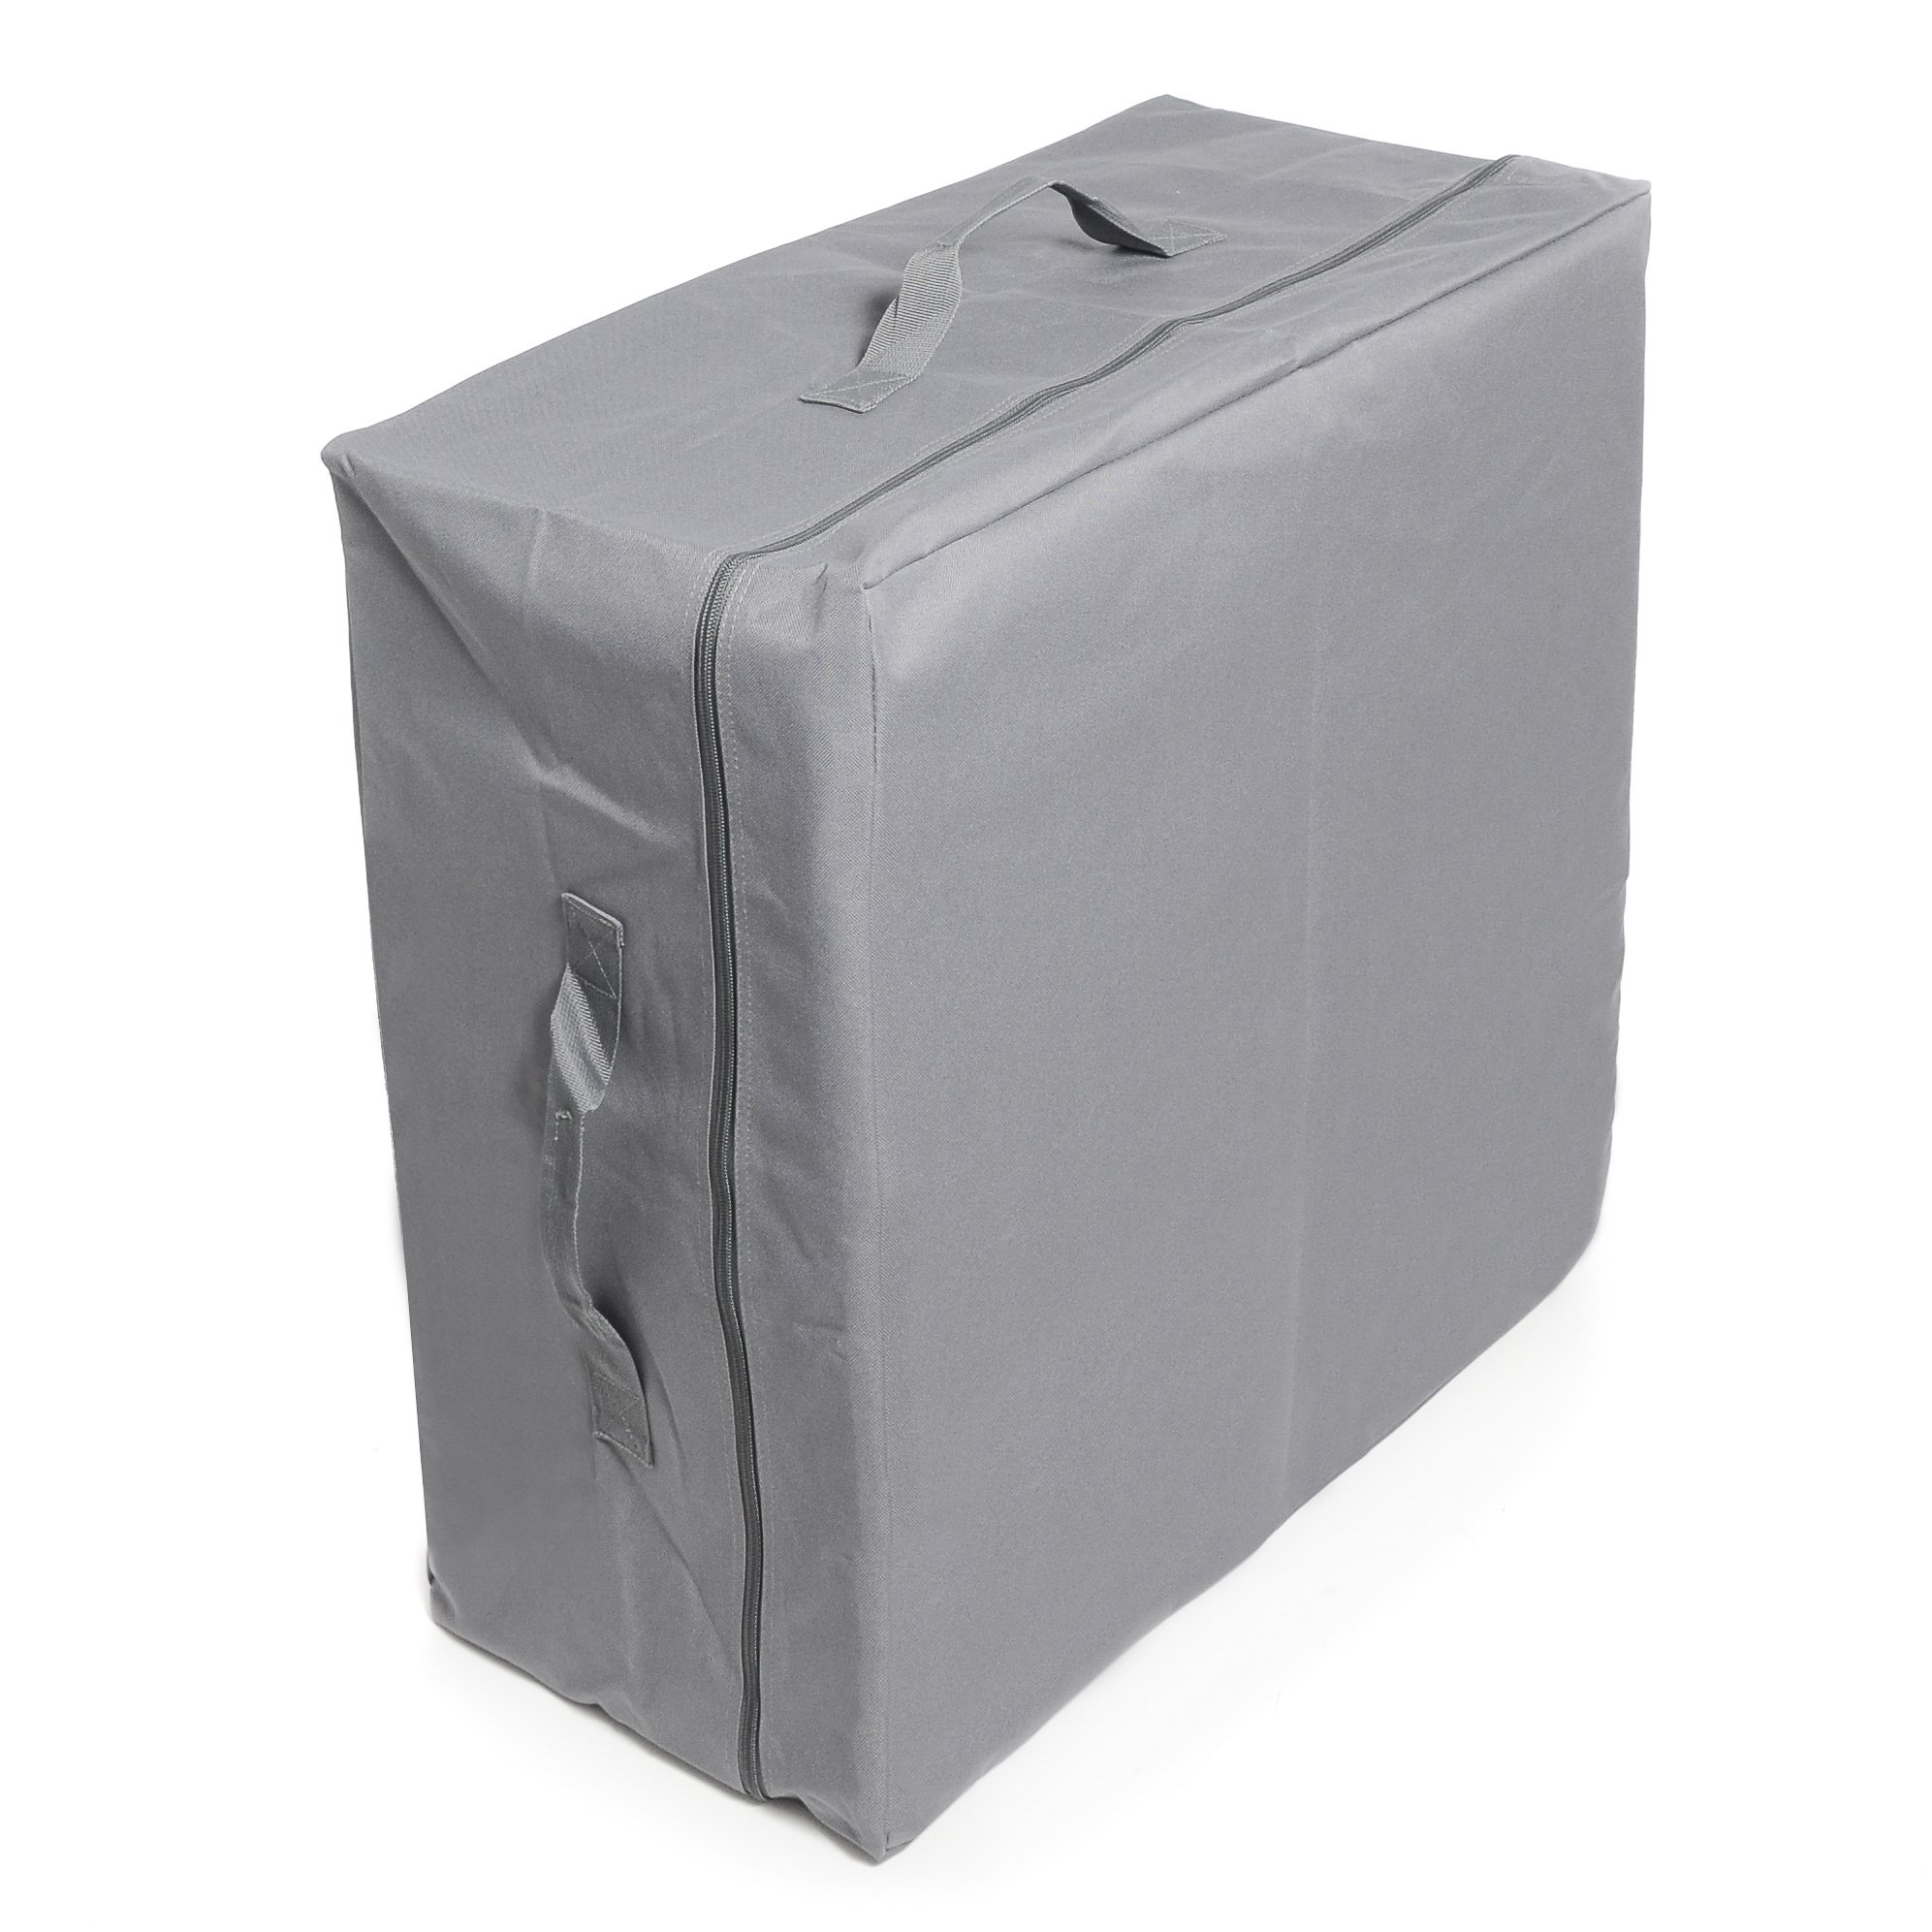 Carry Case for Milliard Tri-Fold Mattress (25 inches Wide, 4 inches Thick) Mattress Not Included by Milliard